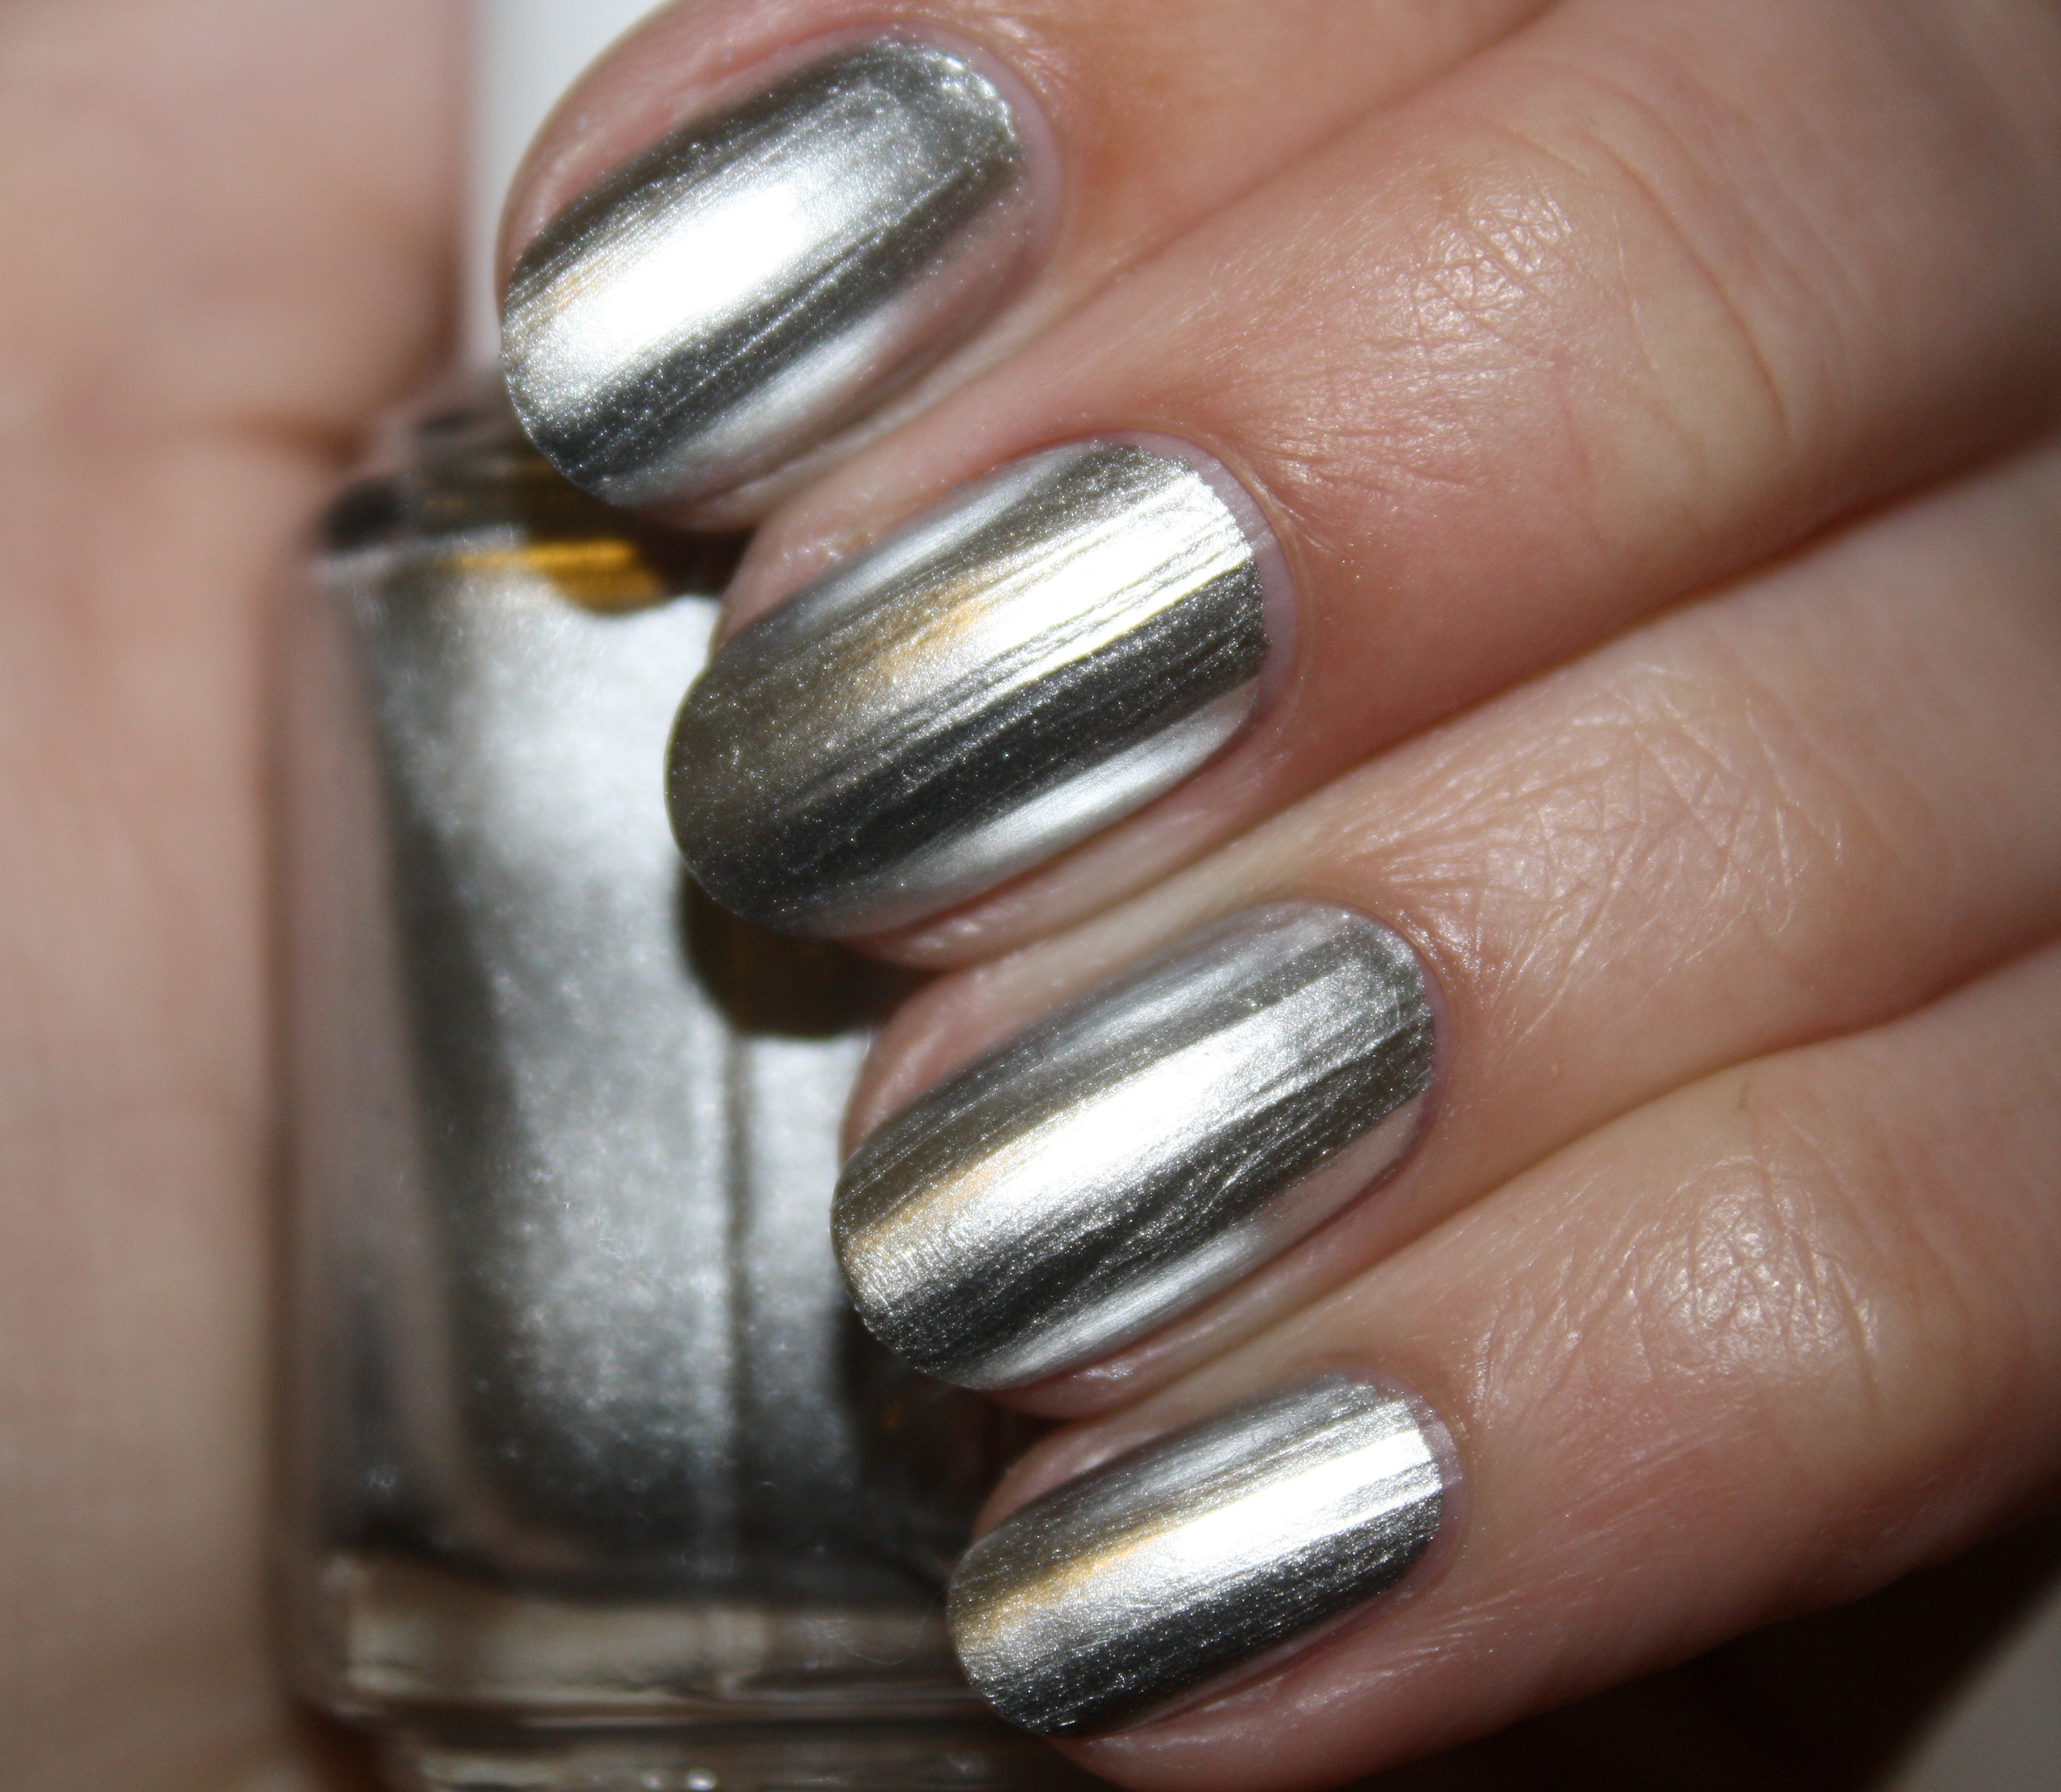 SWATCH REVIEW: ESSIE – MIRROR METALLICS